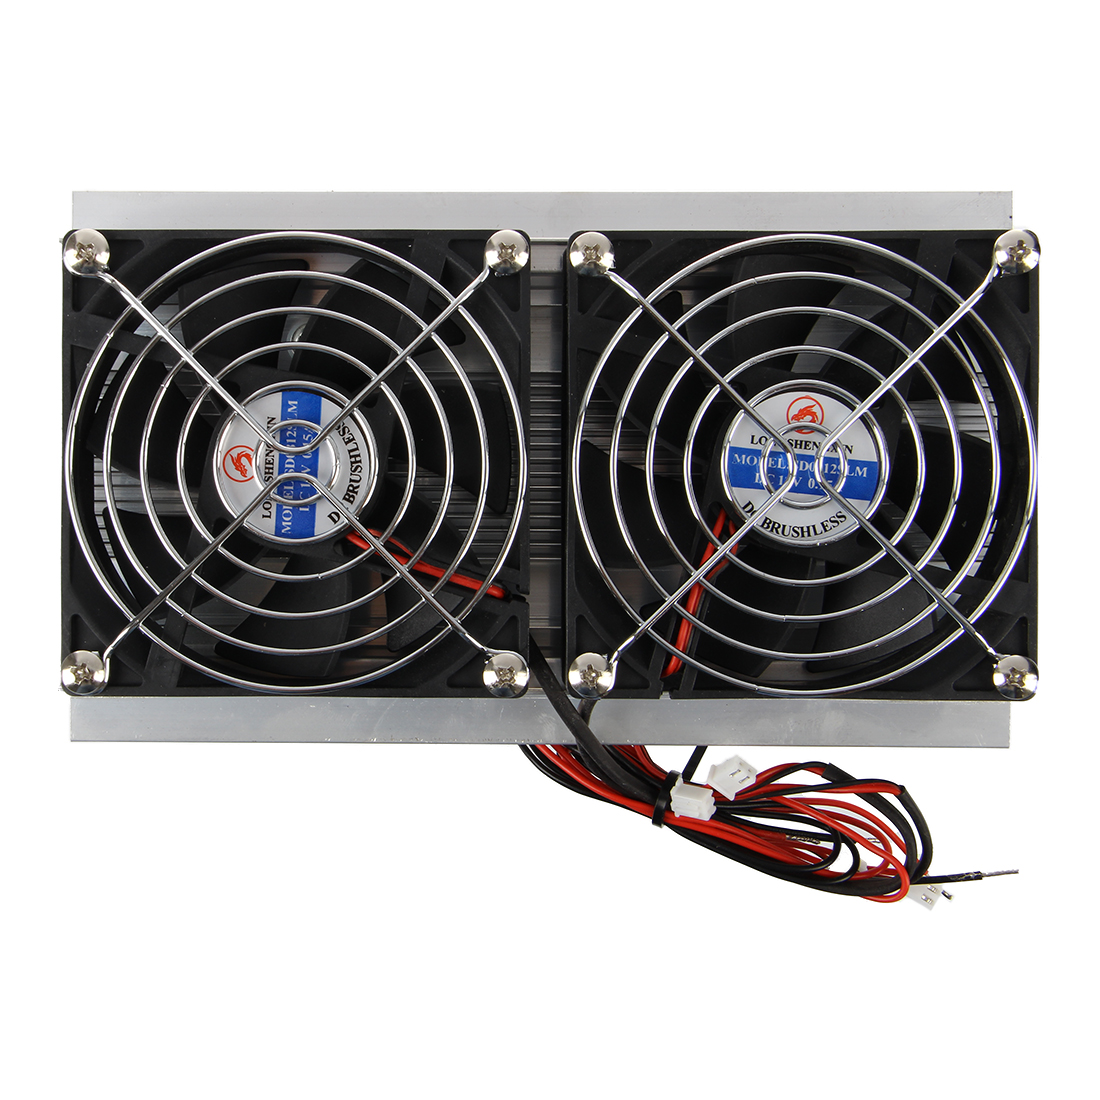 AC 12V 10A 120W Thermoelectric Peltier Refrigeration Cooling System Kit Cooler Double Fan DIY 5 pcs qdzh35g r134a 12v cooling compressor for marine refrigeration unit